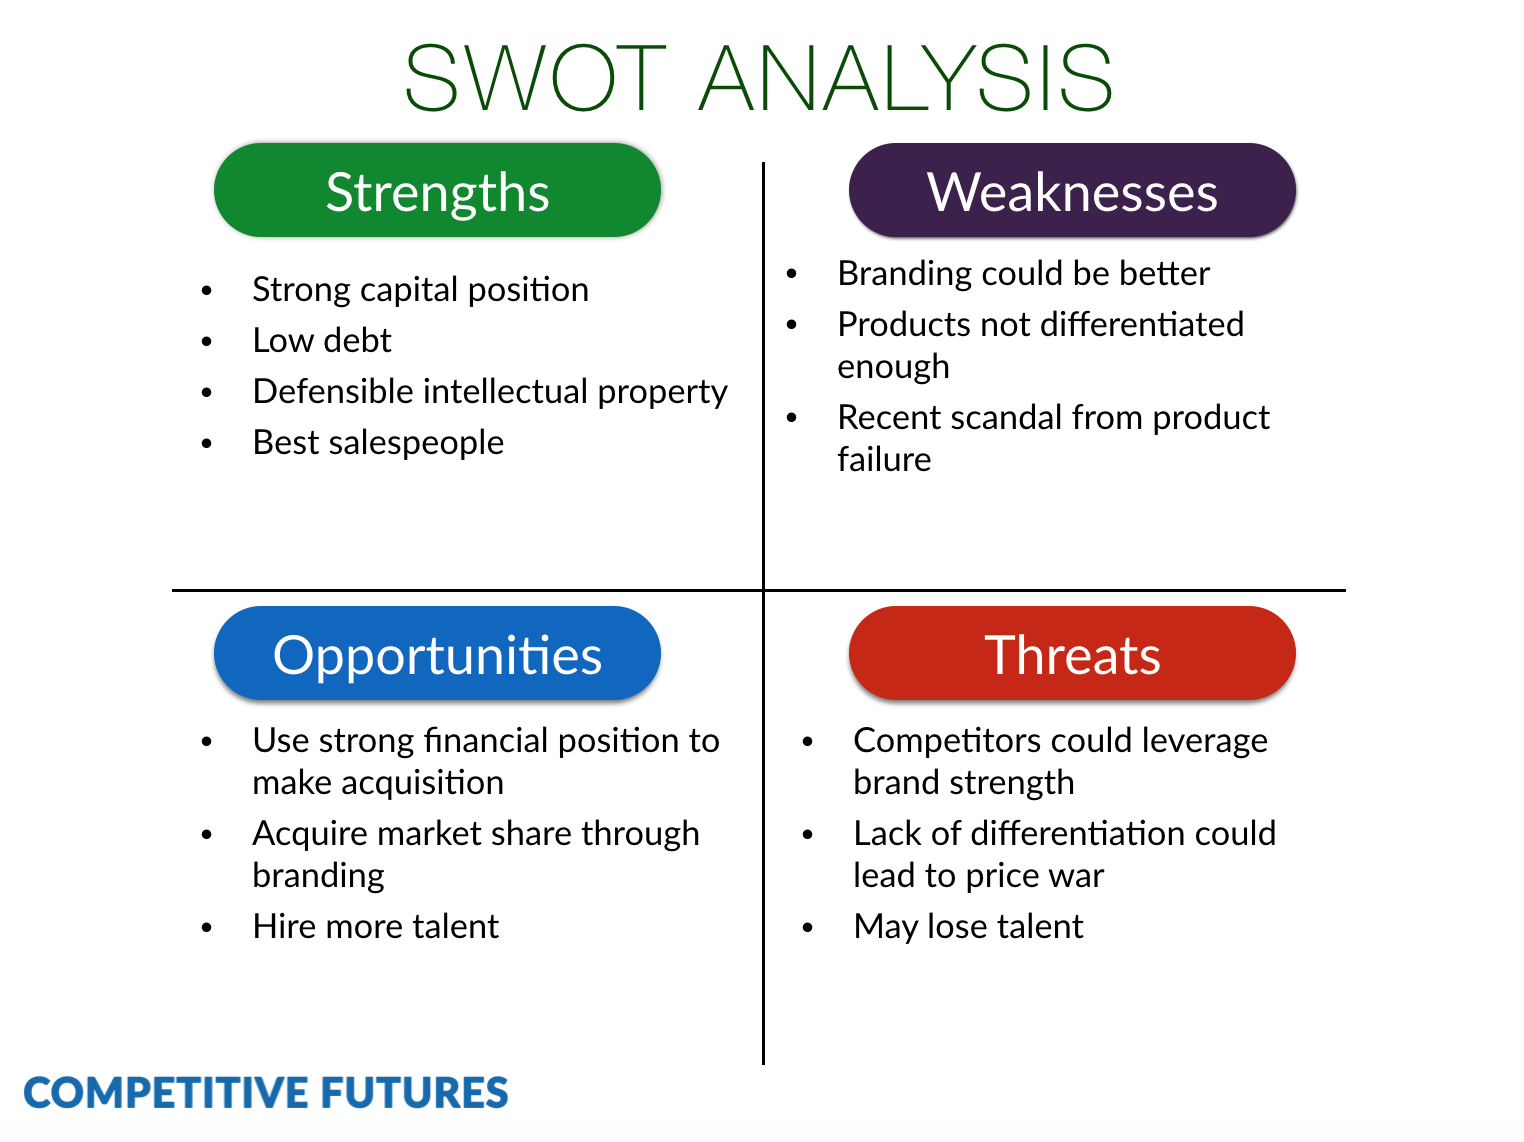 spar swot analysis on franchise company Spending time reviewing various swot analysis samples can help you structure your swot franchise news franchise your business business tune-ups swot.